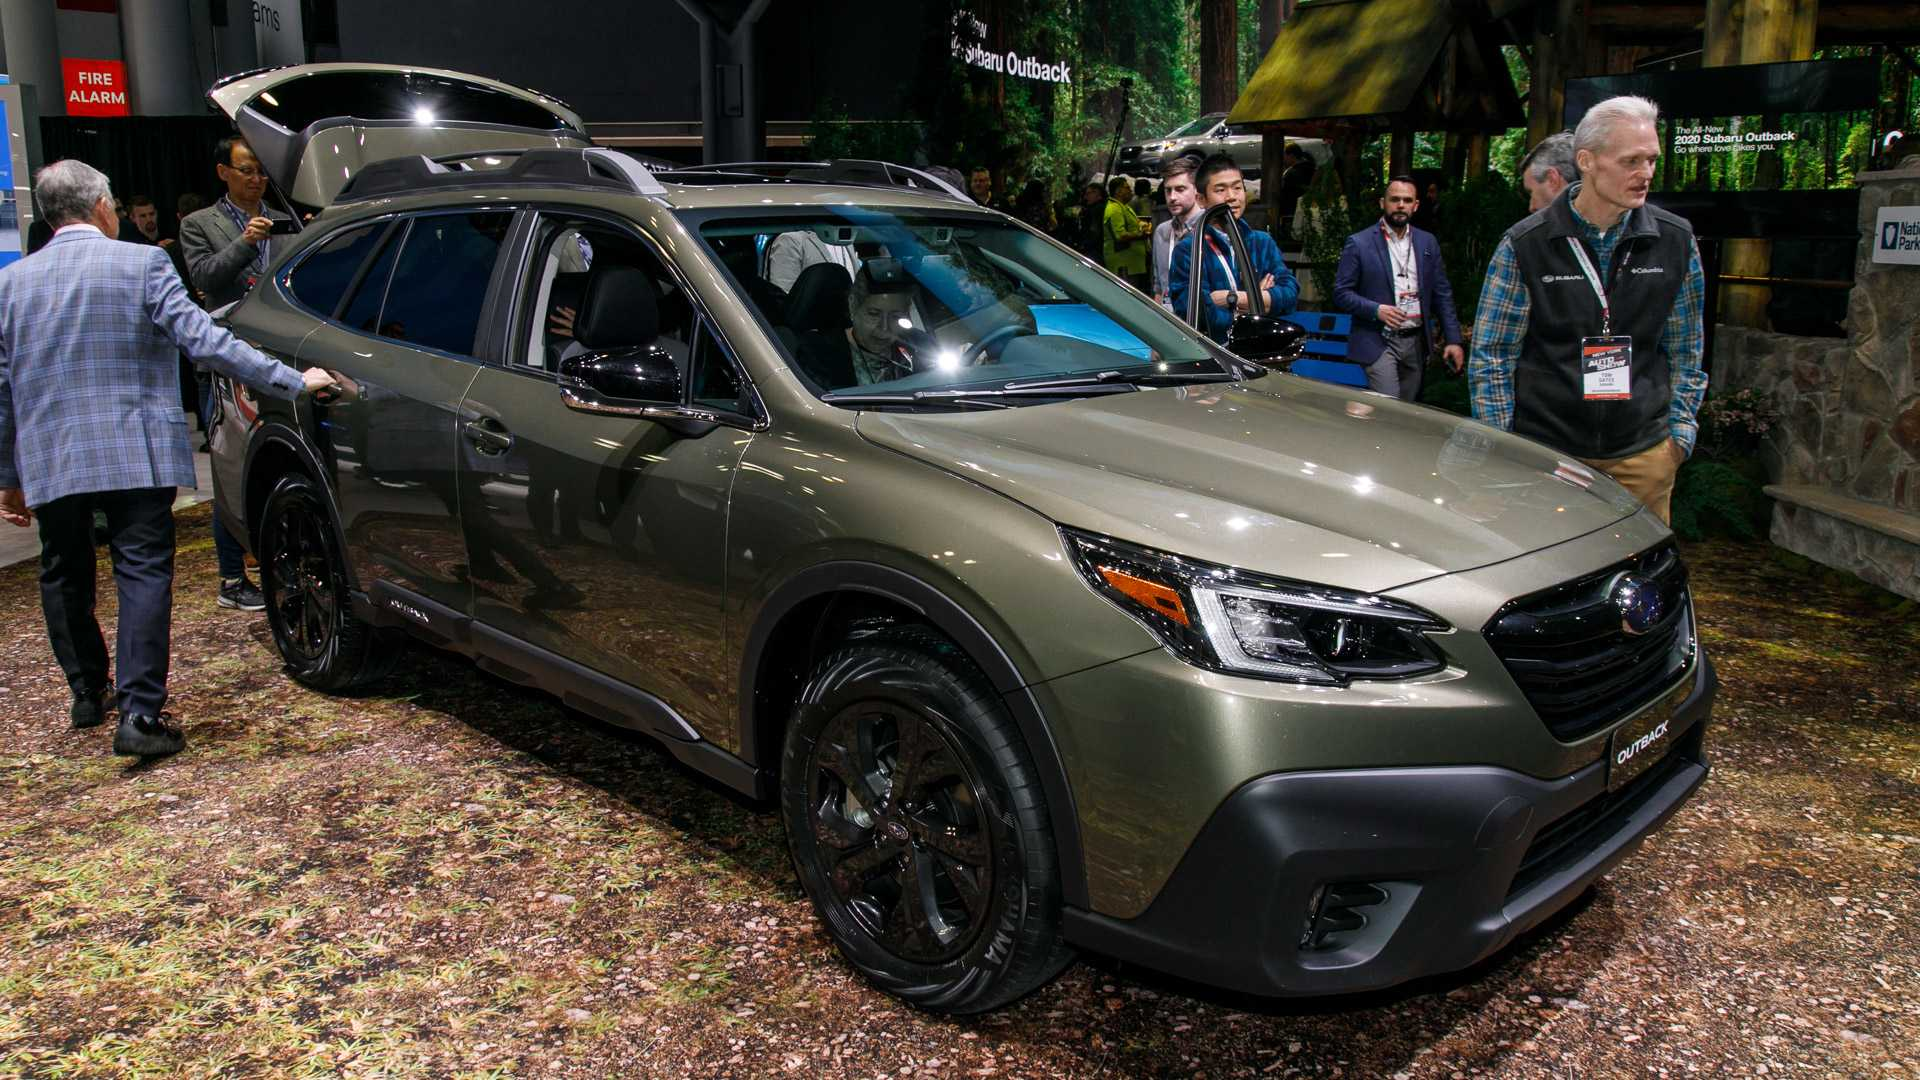 41 Gallery of When Will 2020 Subaru Outback Be Available Price with When Will 2020 Subaru Outback Be Available